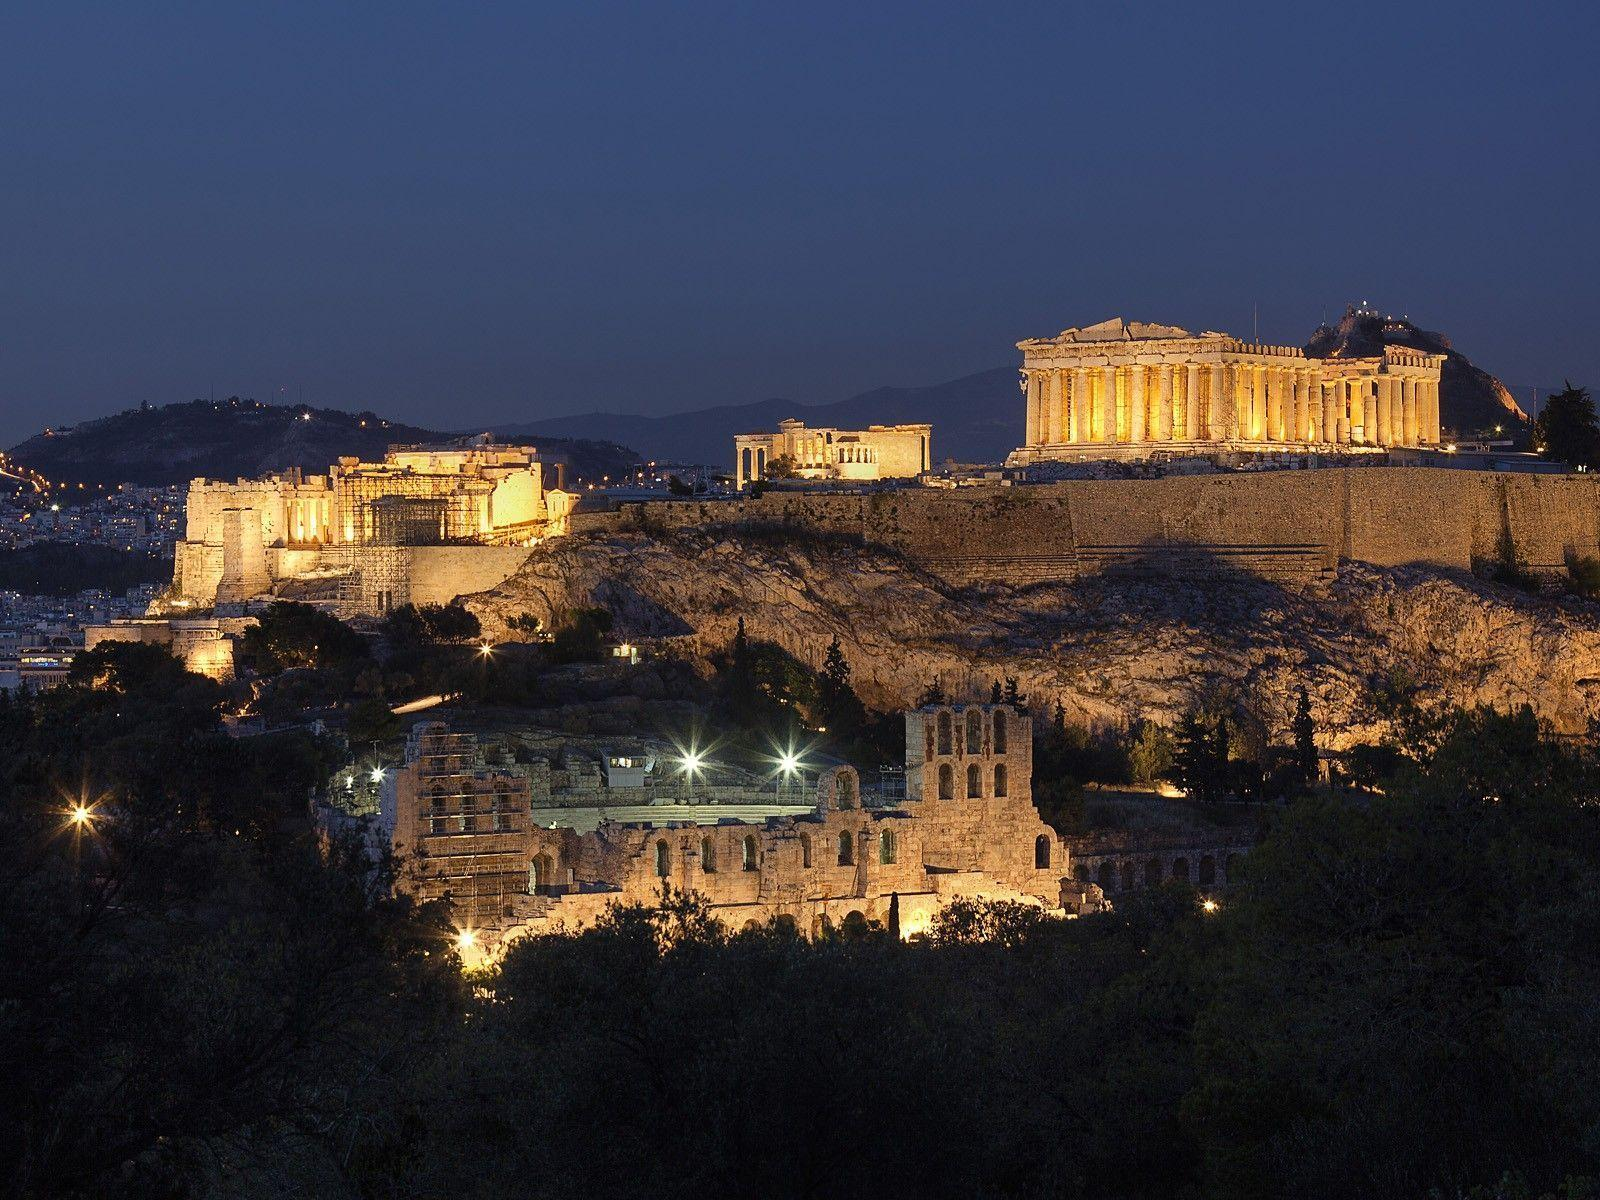 Wallpapers of the day: Parthenon